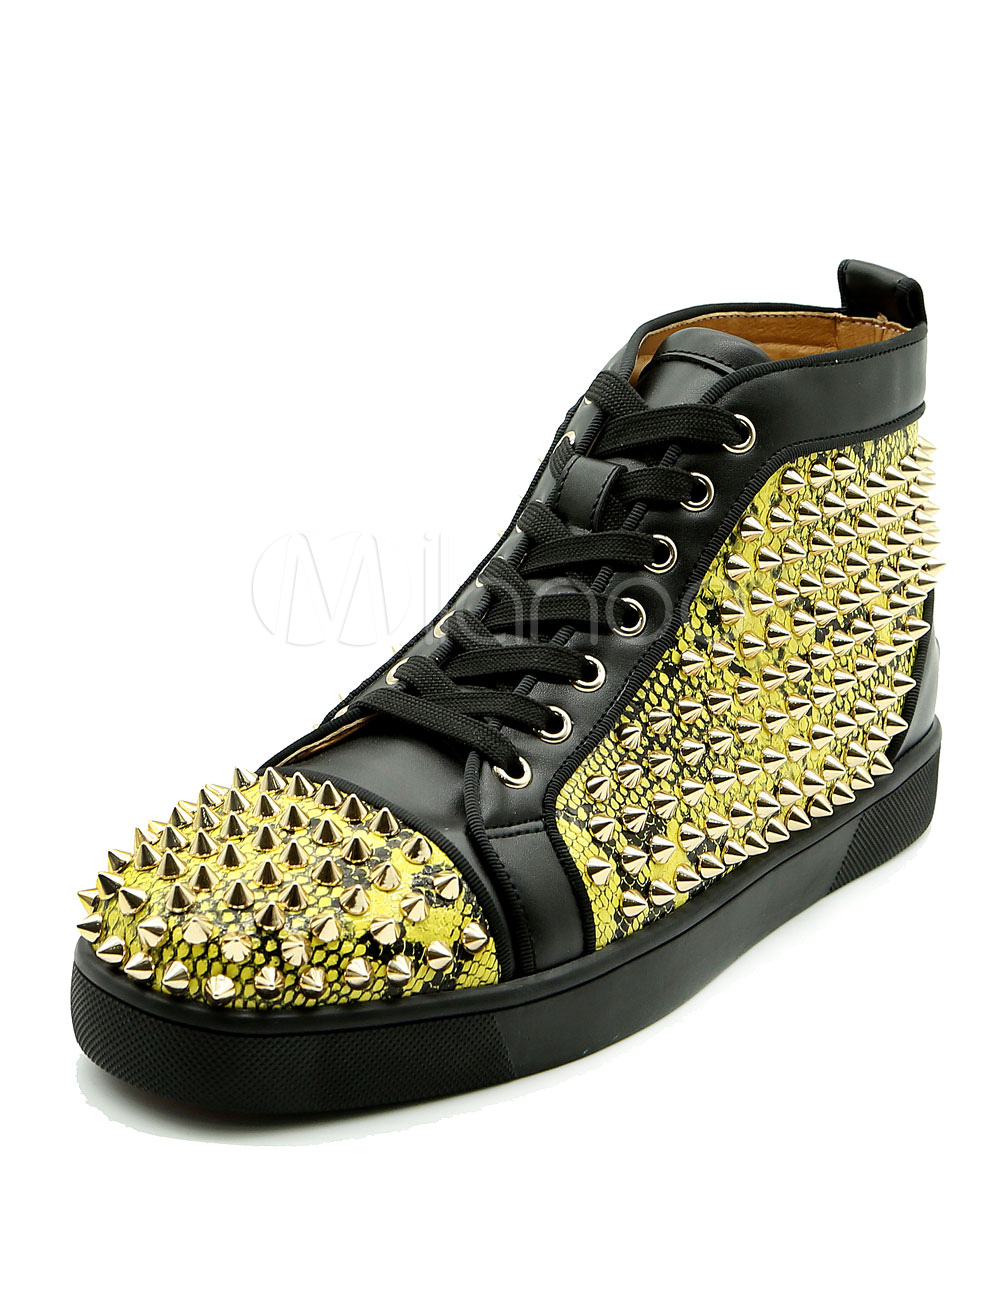 Buy Gold Spike Shoes Men's Round Toe Lace Up Rivets High Top Sneakers for $94.99 in Milanoo store